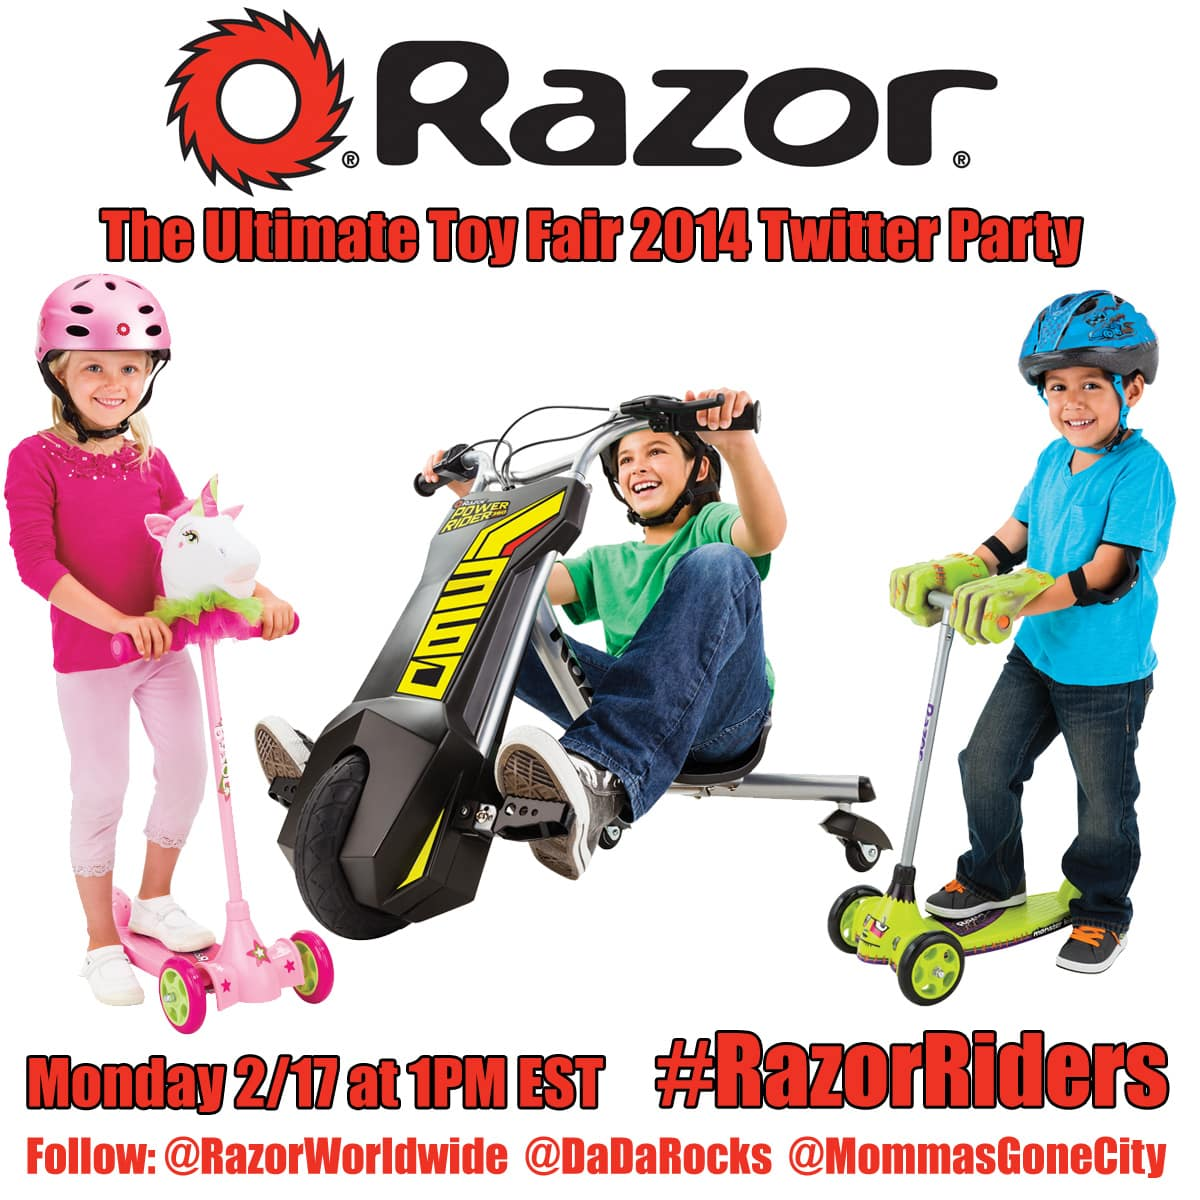 #RazorRiders Toy Fair 2014 Twitter Party!